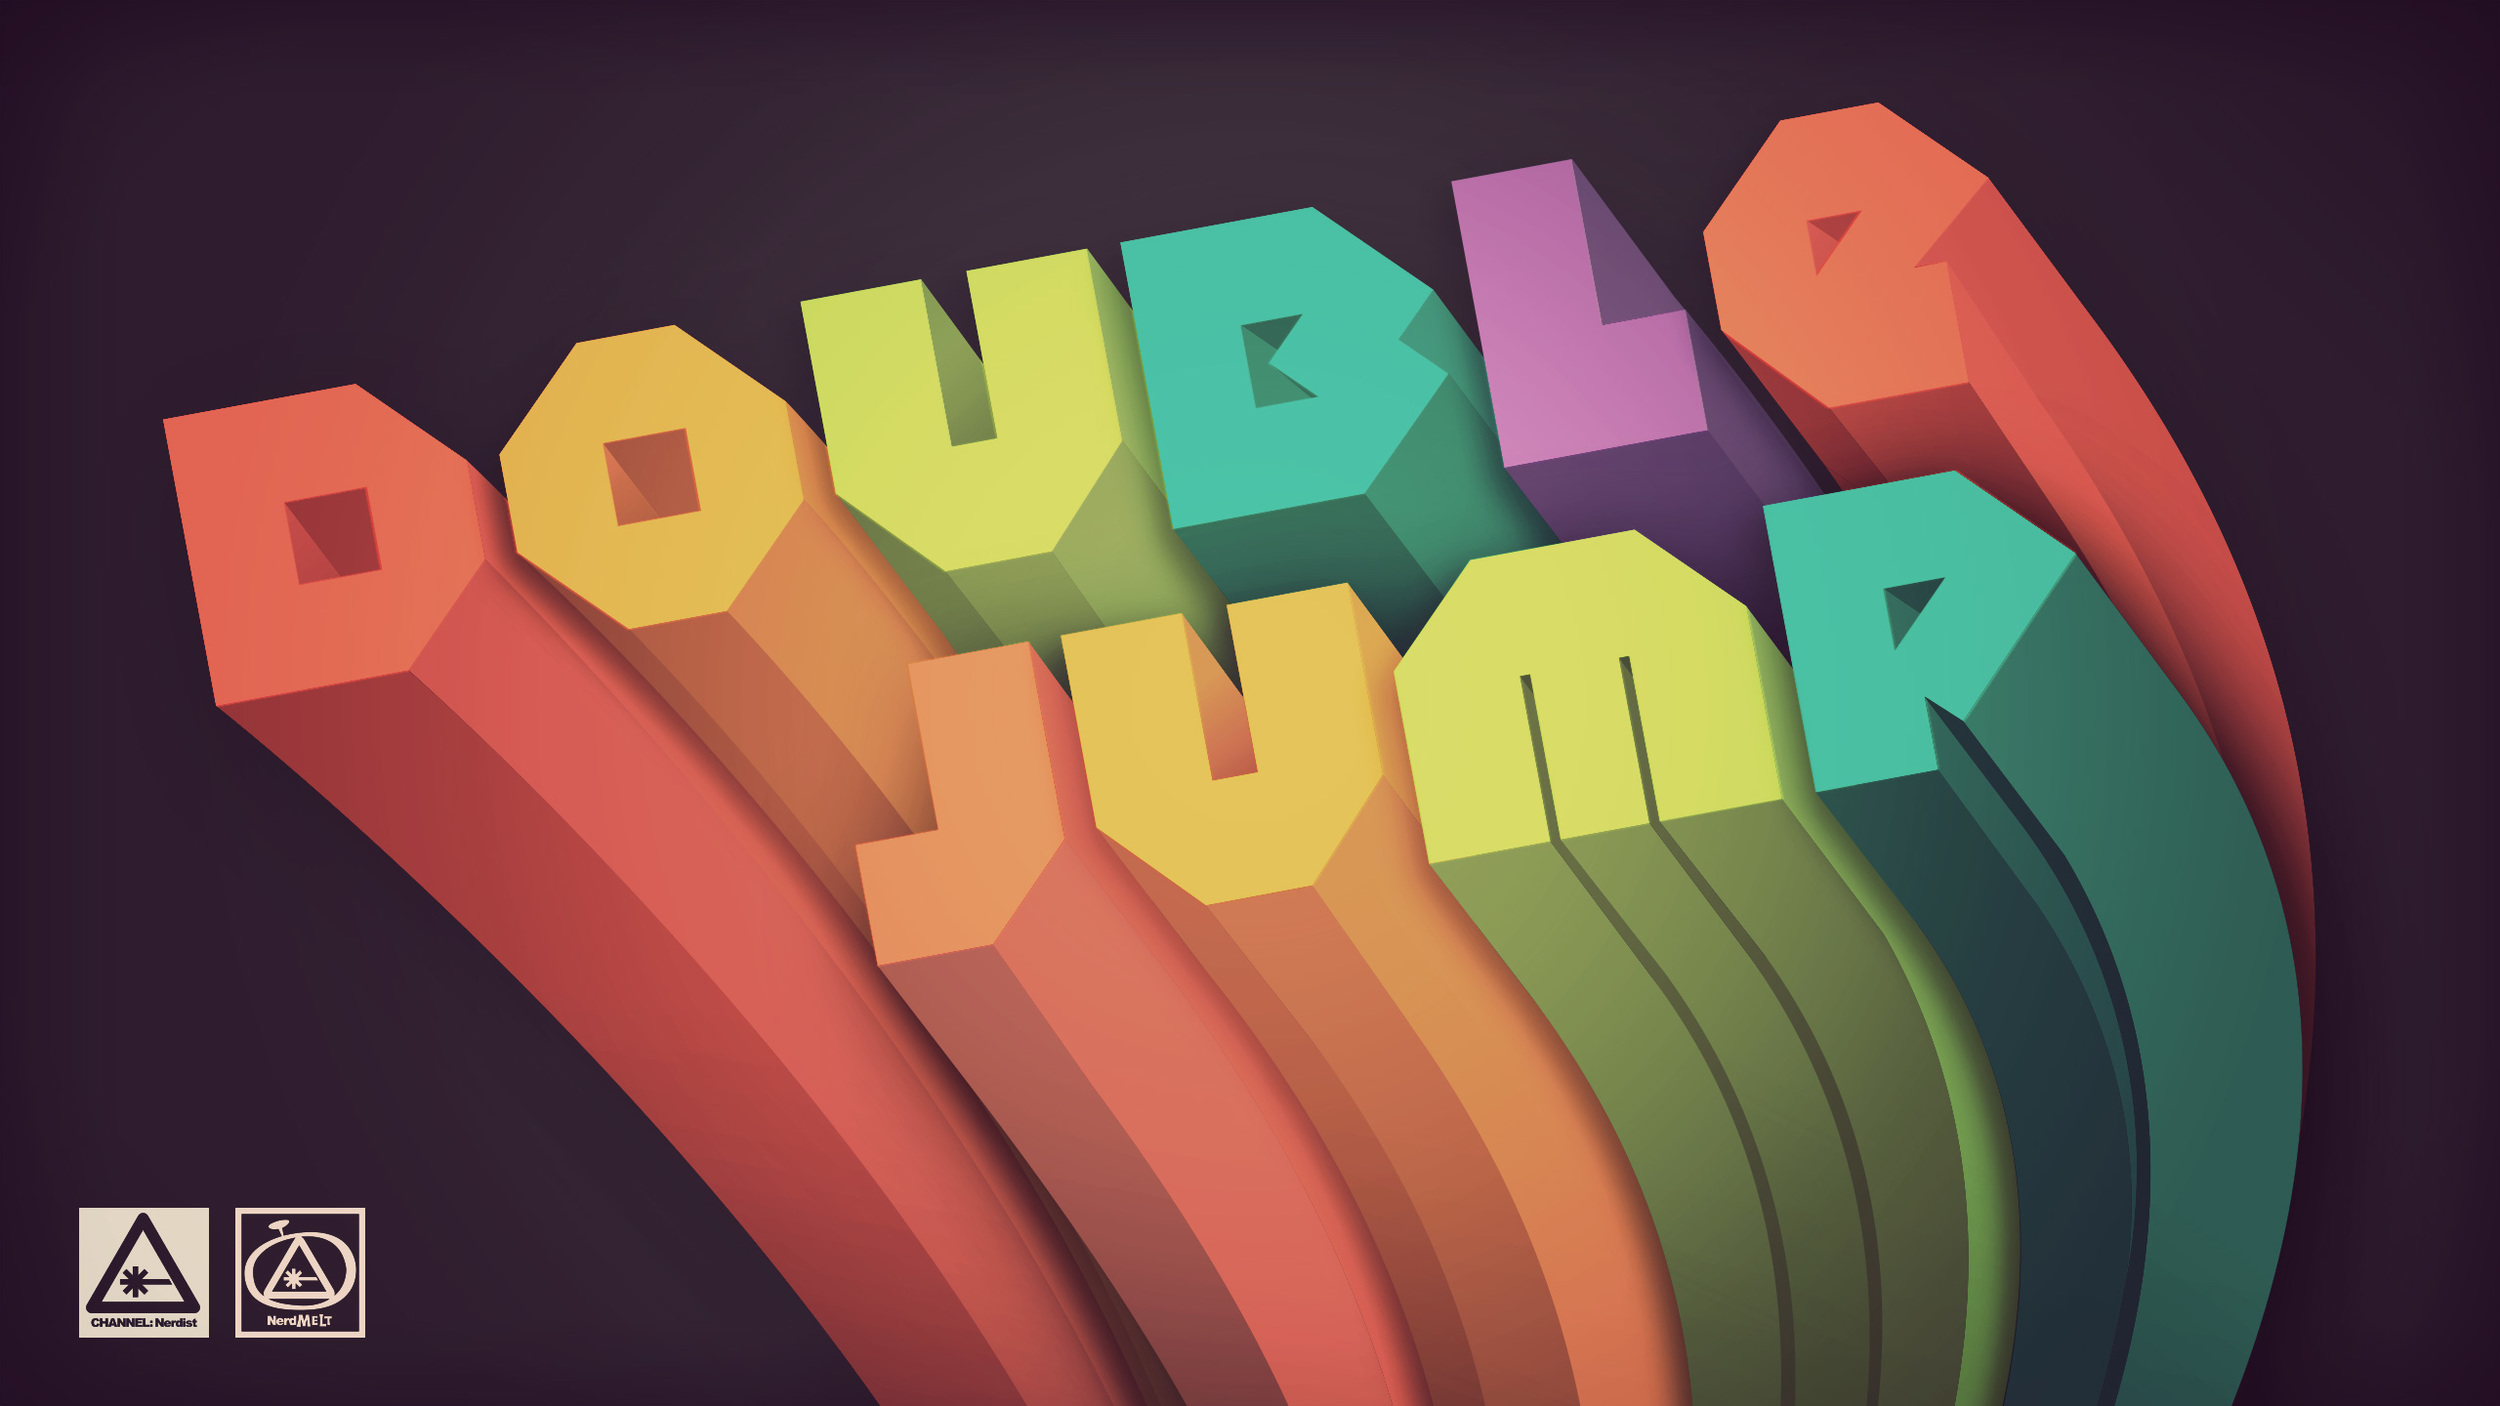 Double Jump walpaper 3 (2560 x 1440)